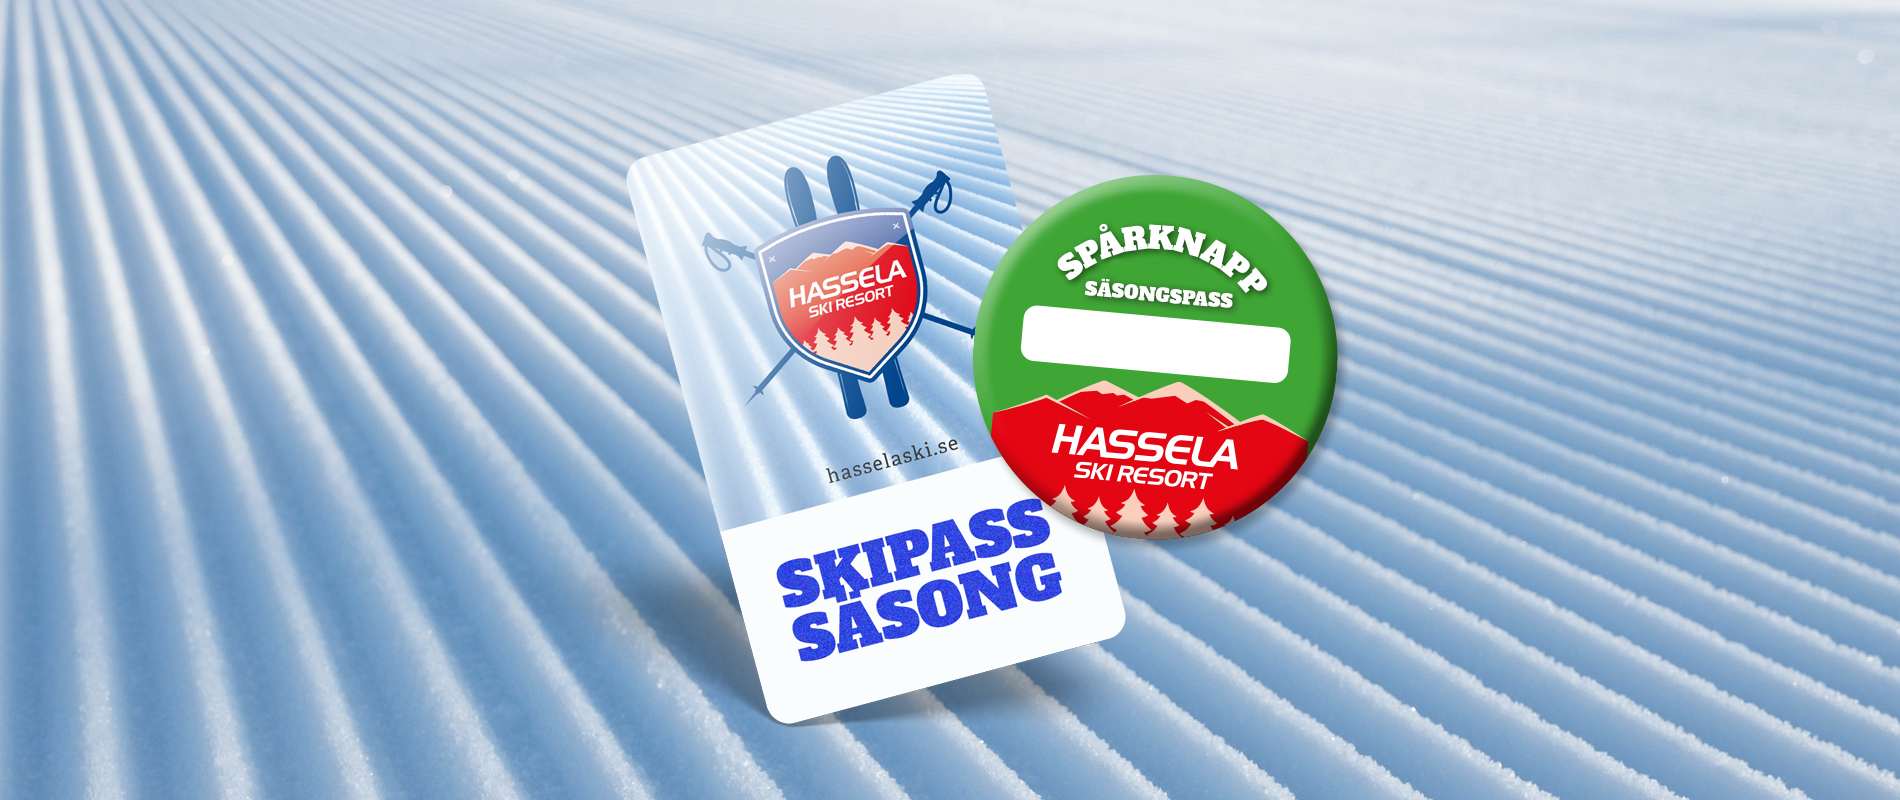 säsongspass